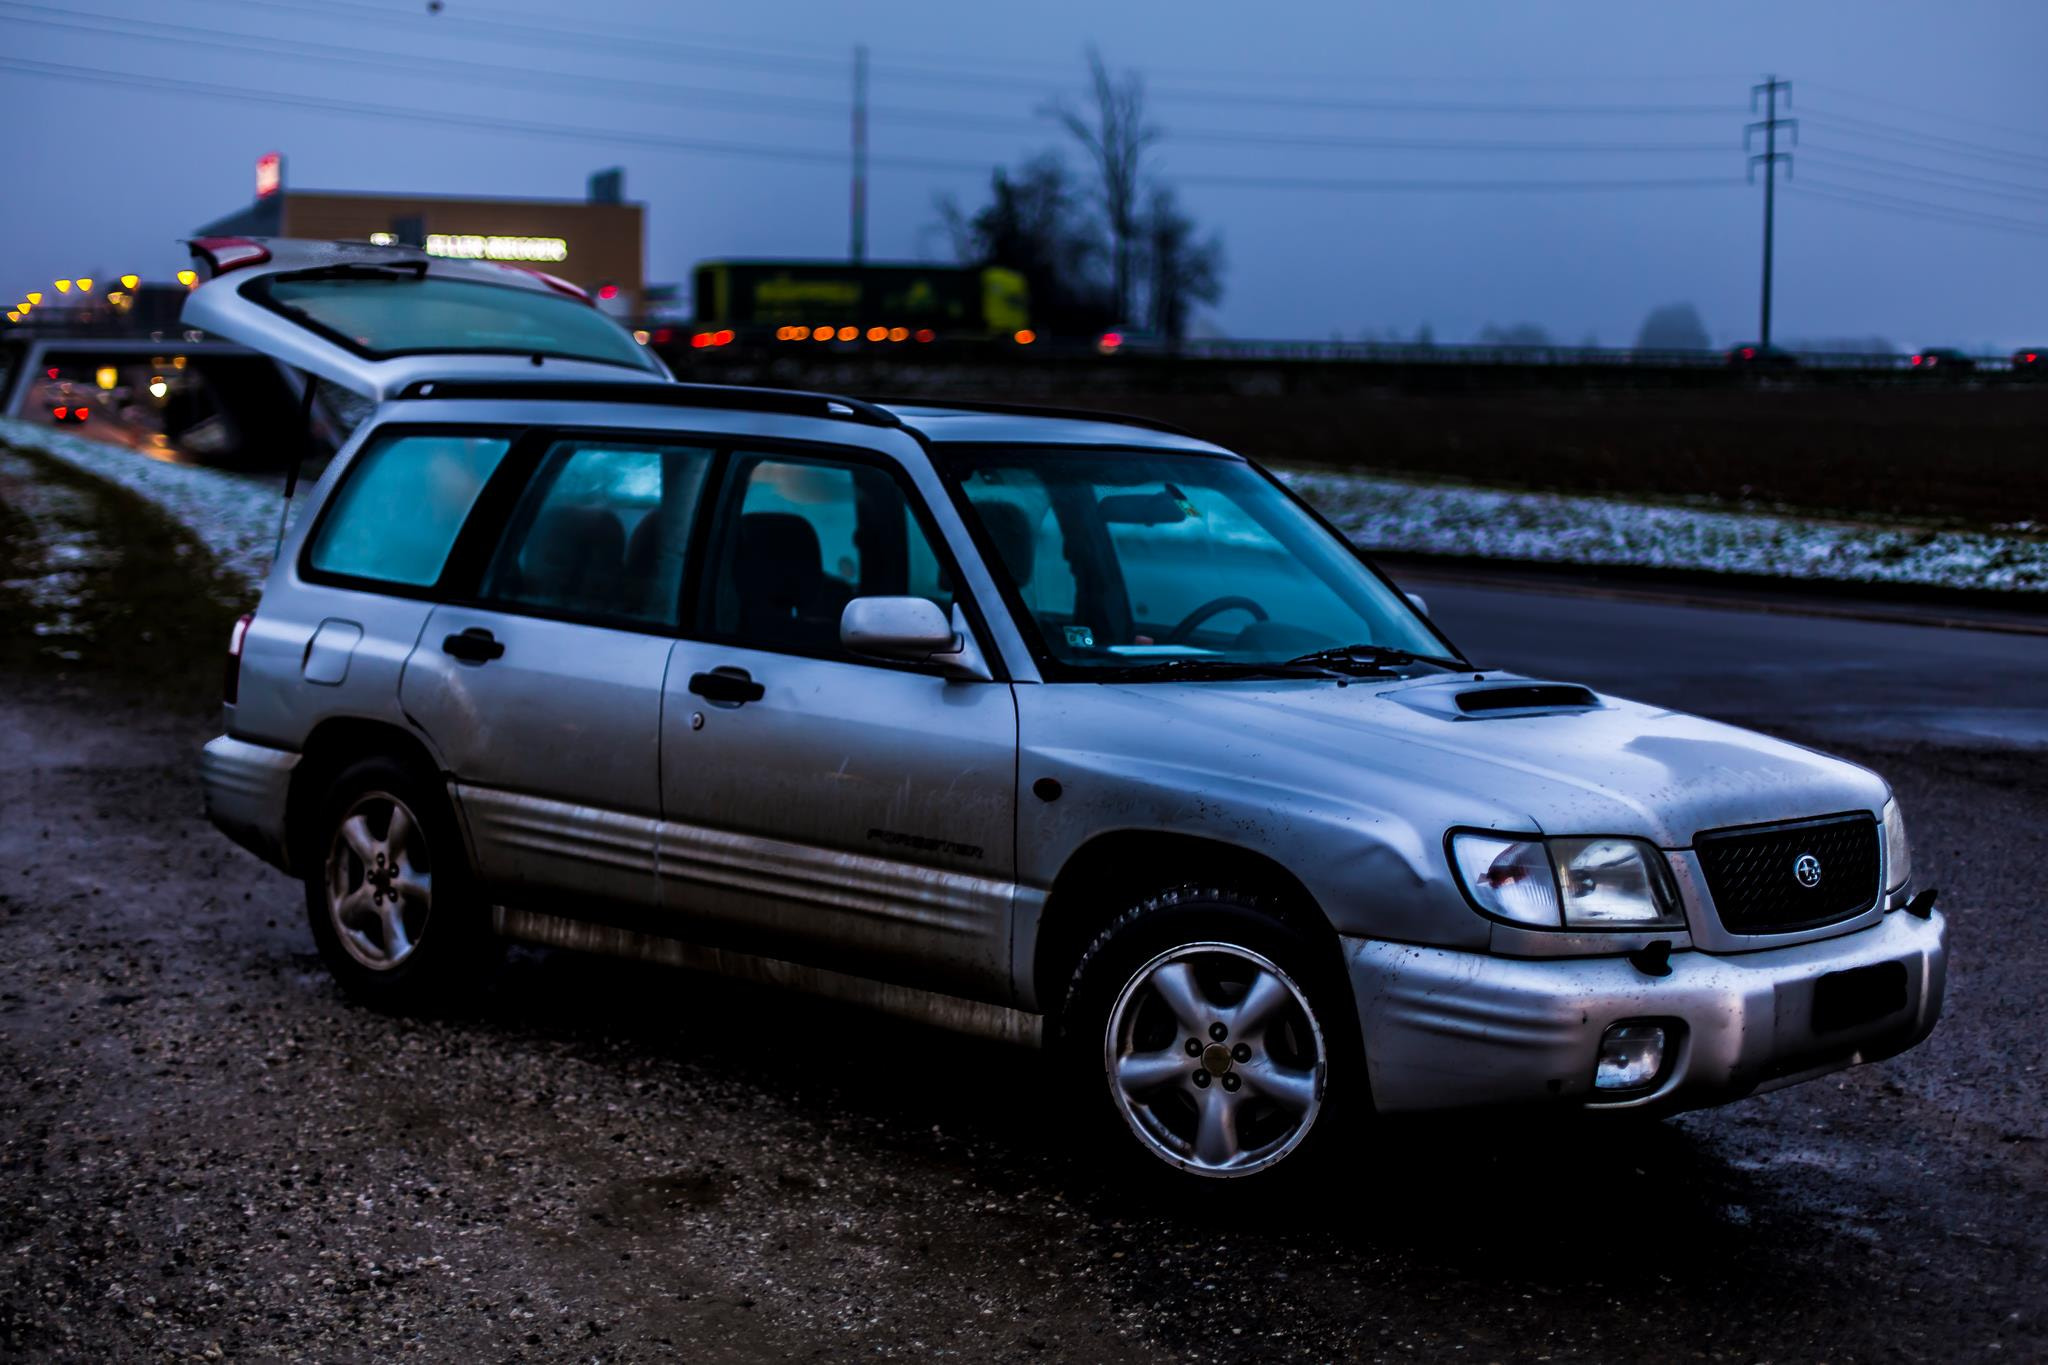 Photograph Subaru Forester JG 2000 by Dominic Kurz on 500px